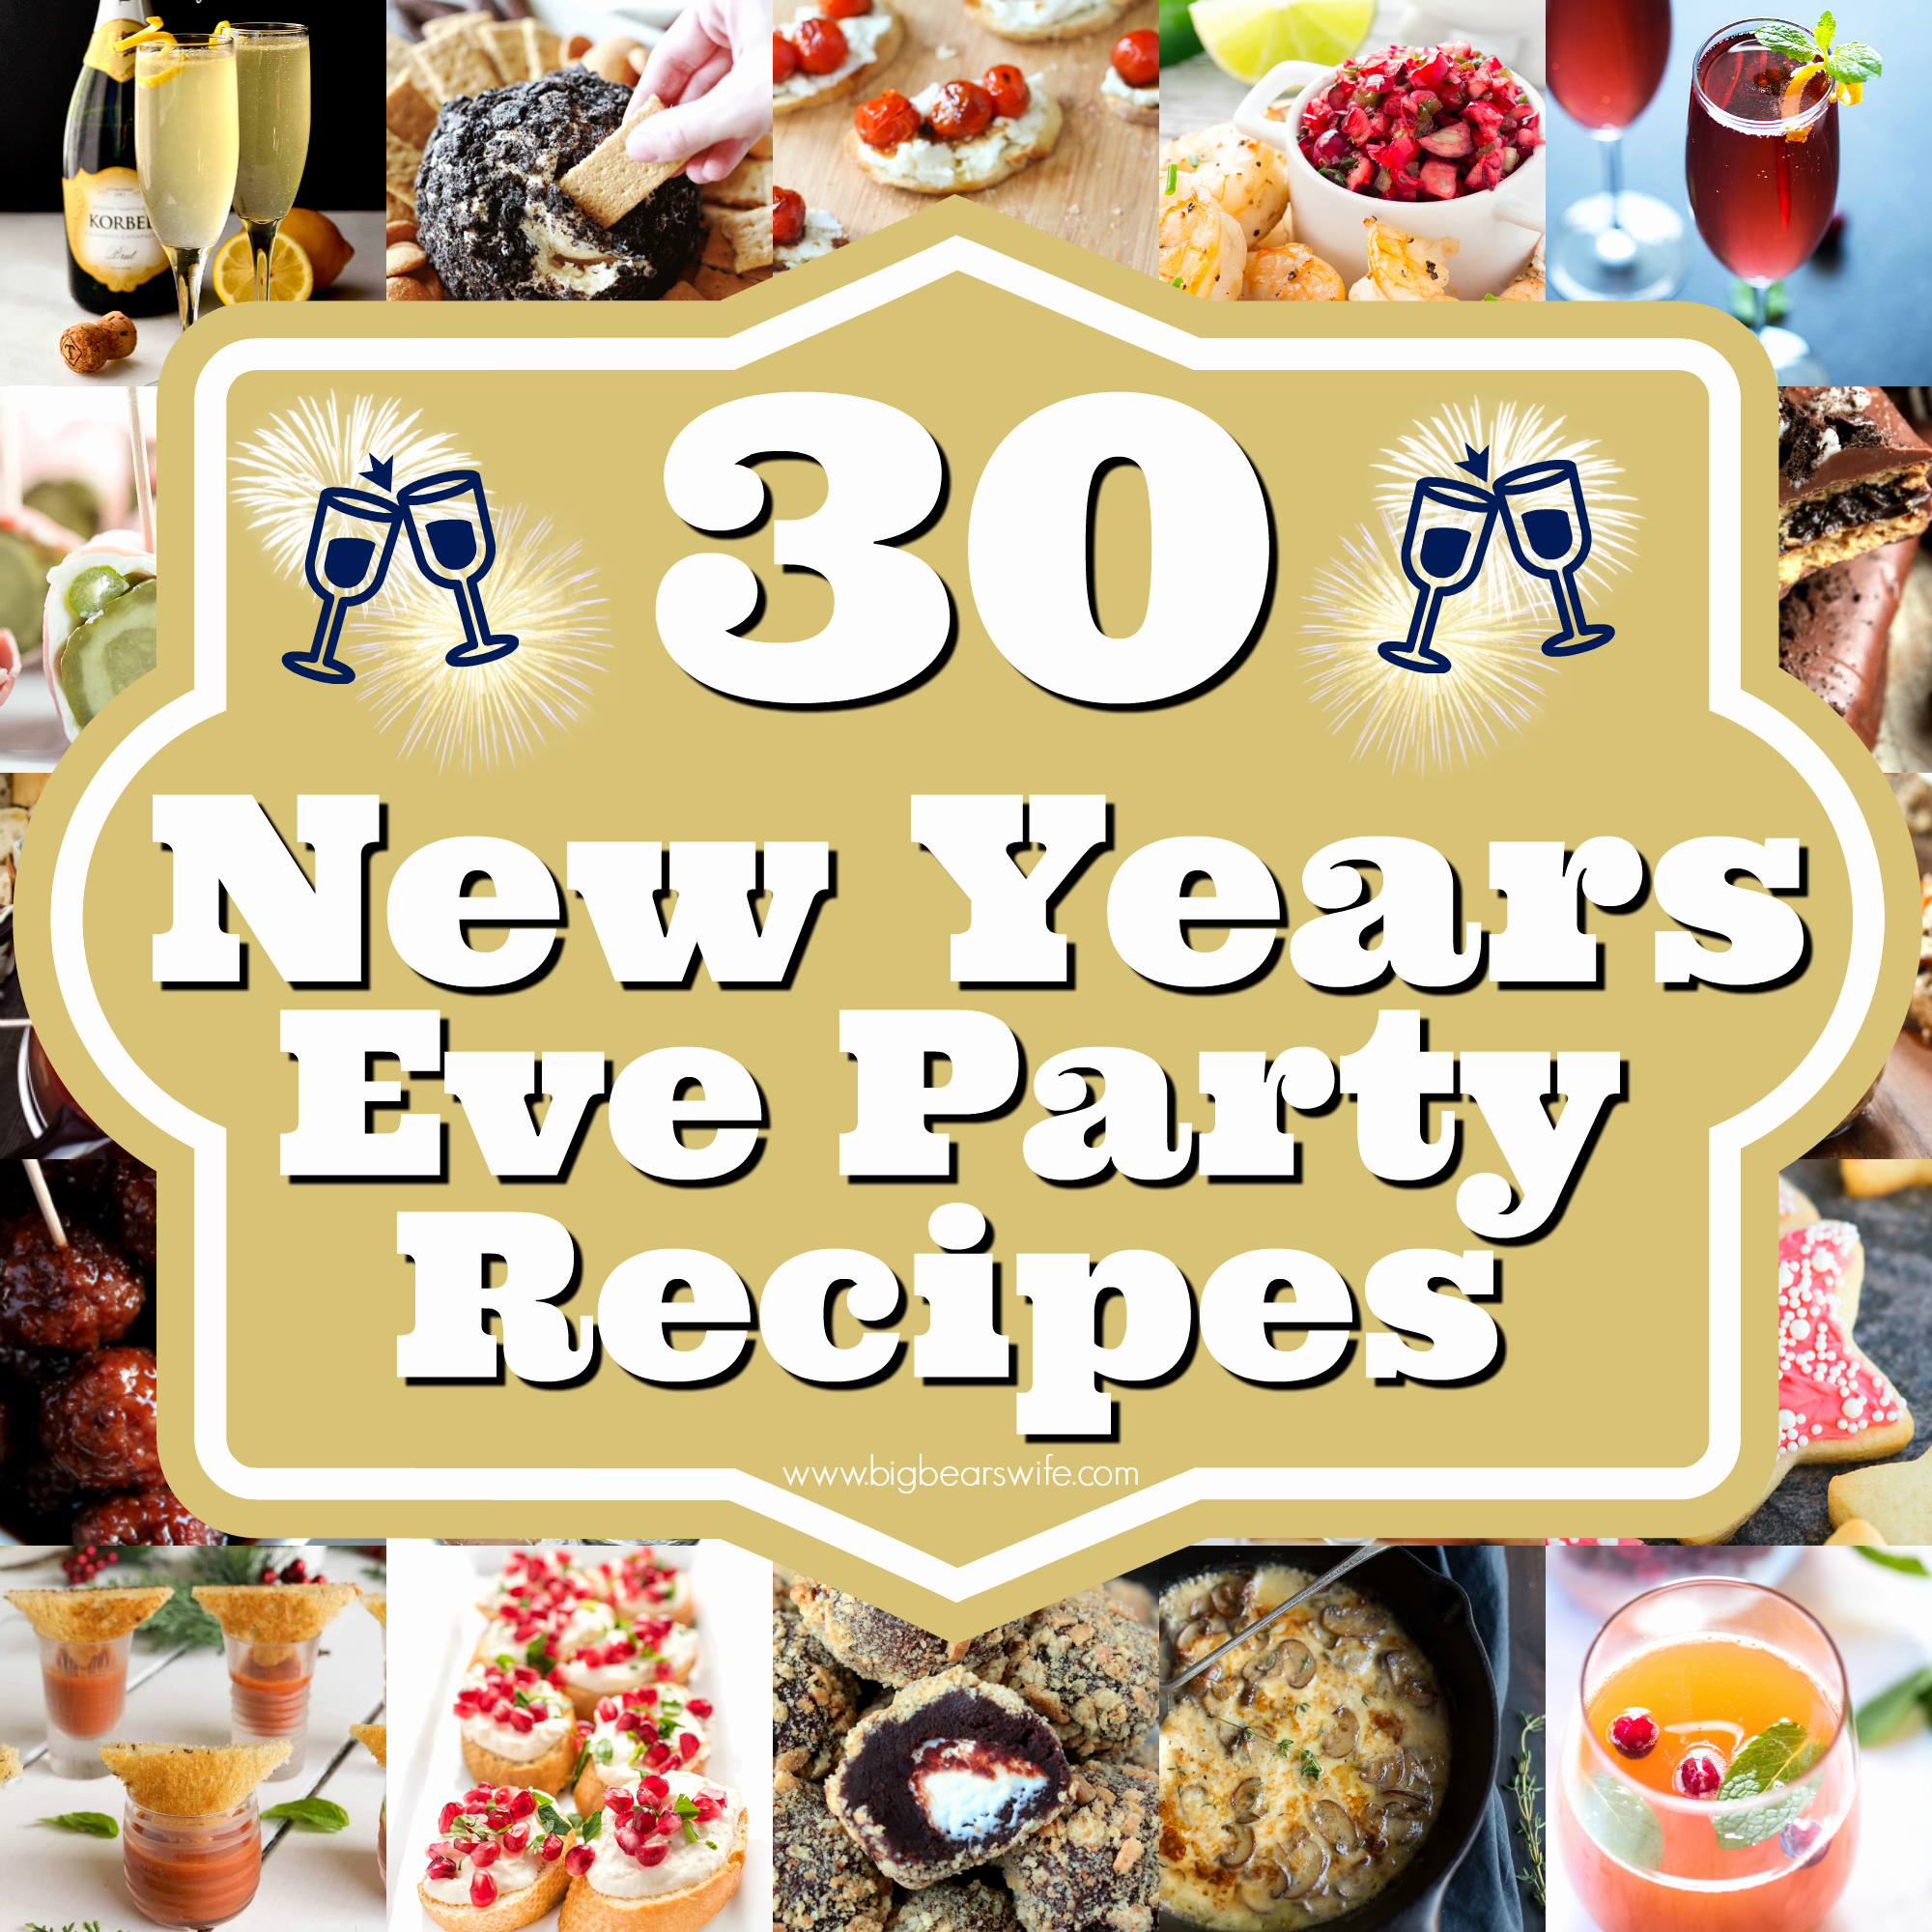 New Years Eve Party Checklist Best Of 30 New Years Eve Party Recipes Savory Ideas Sweets and